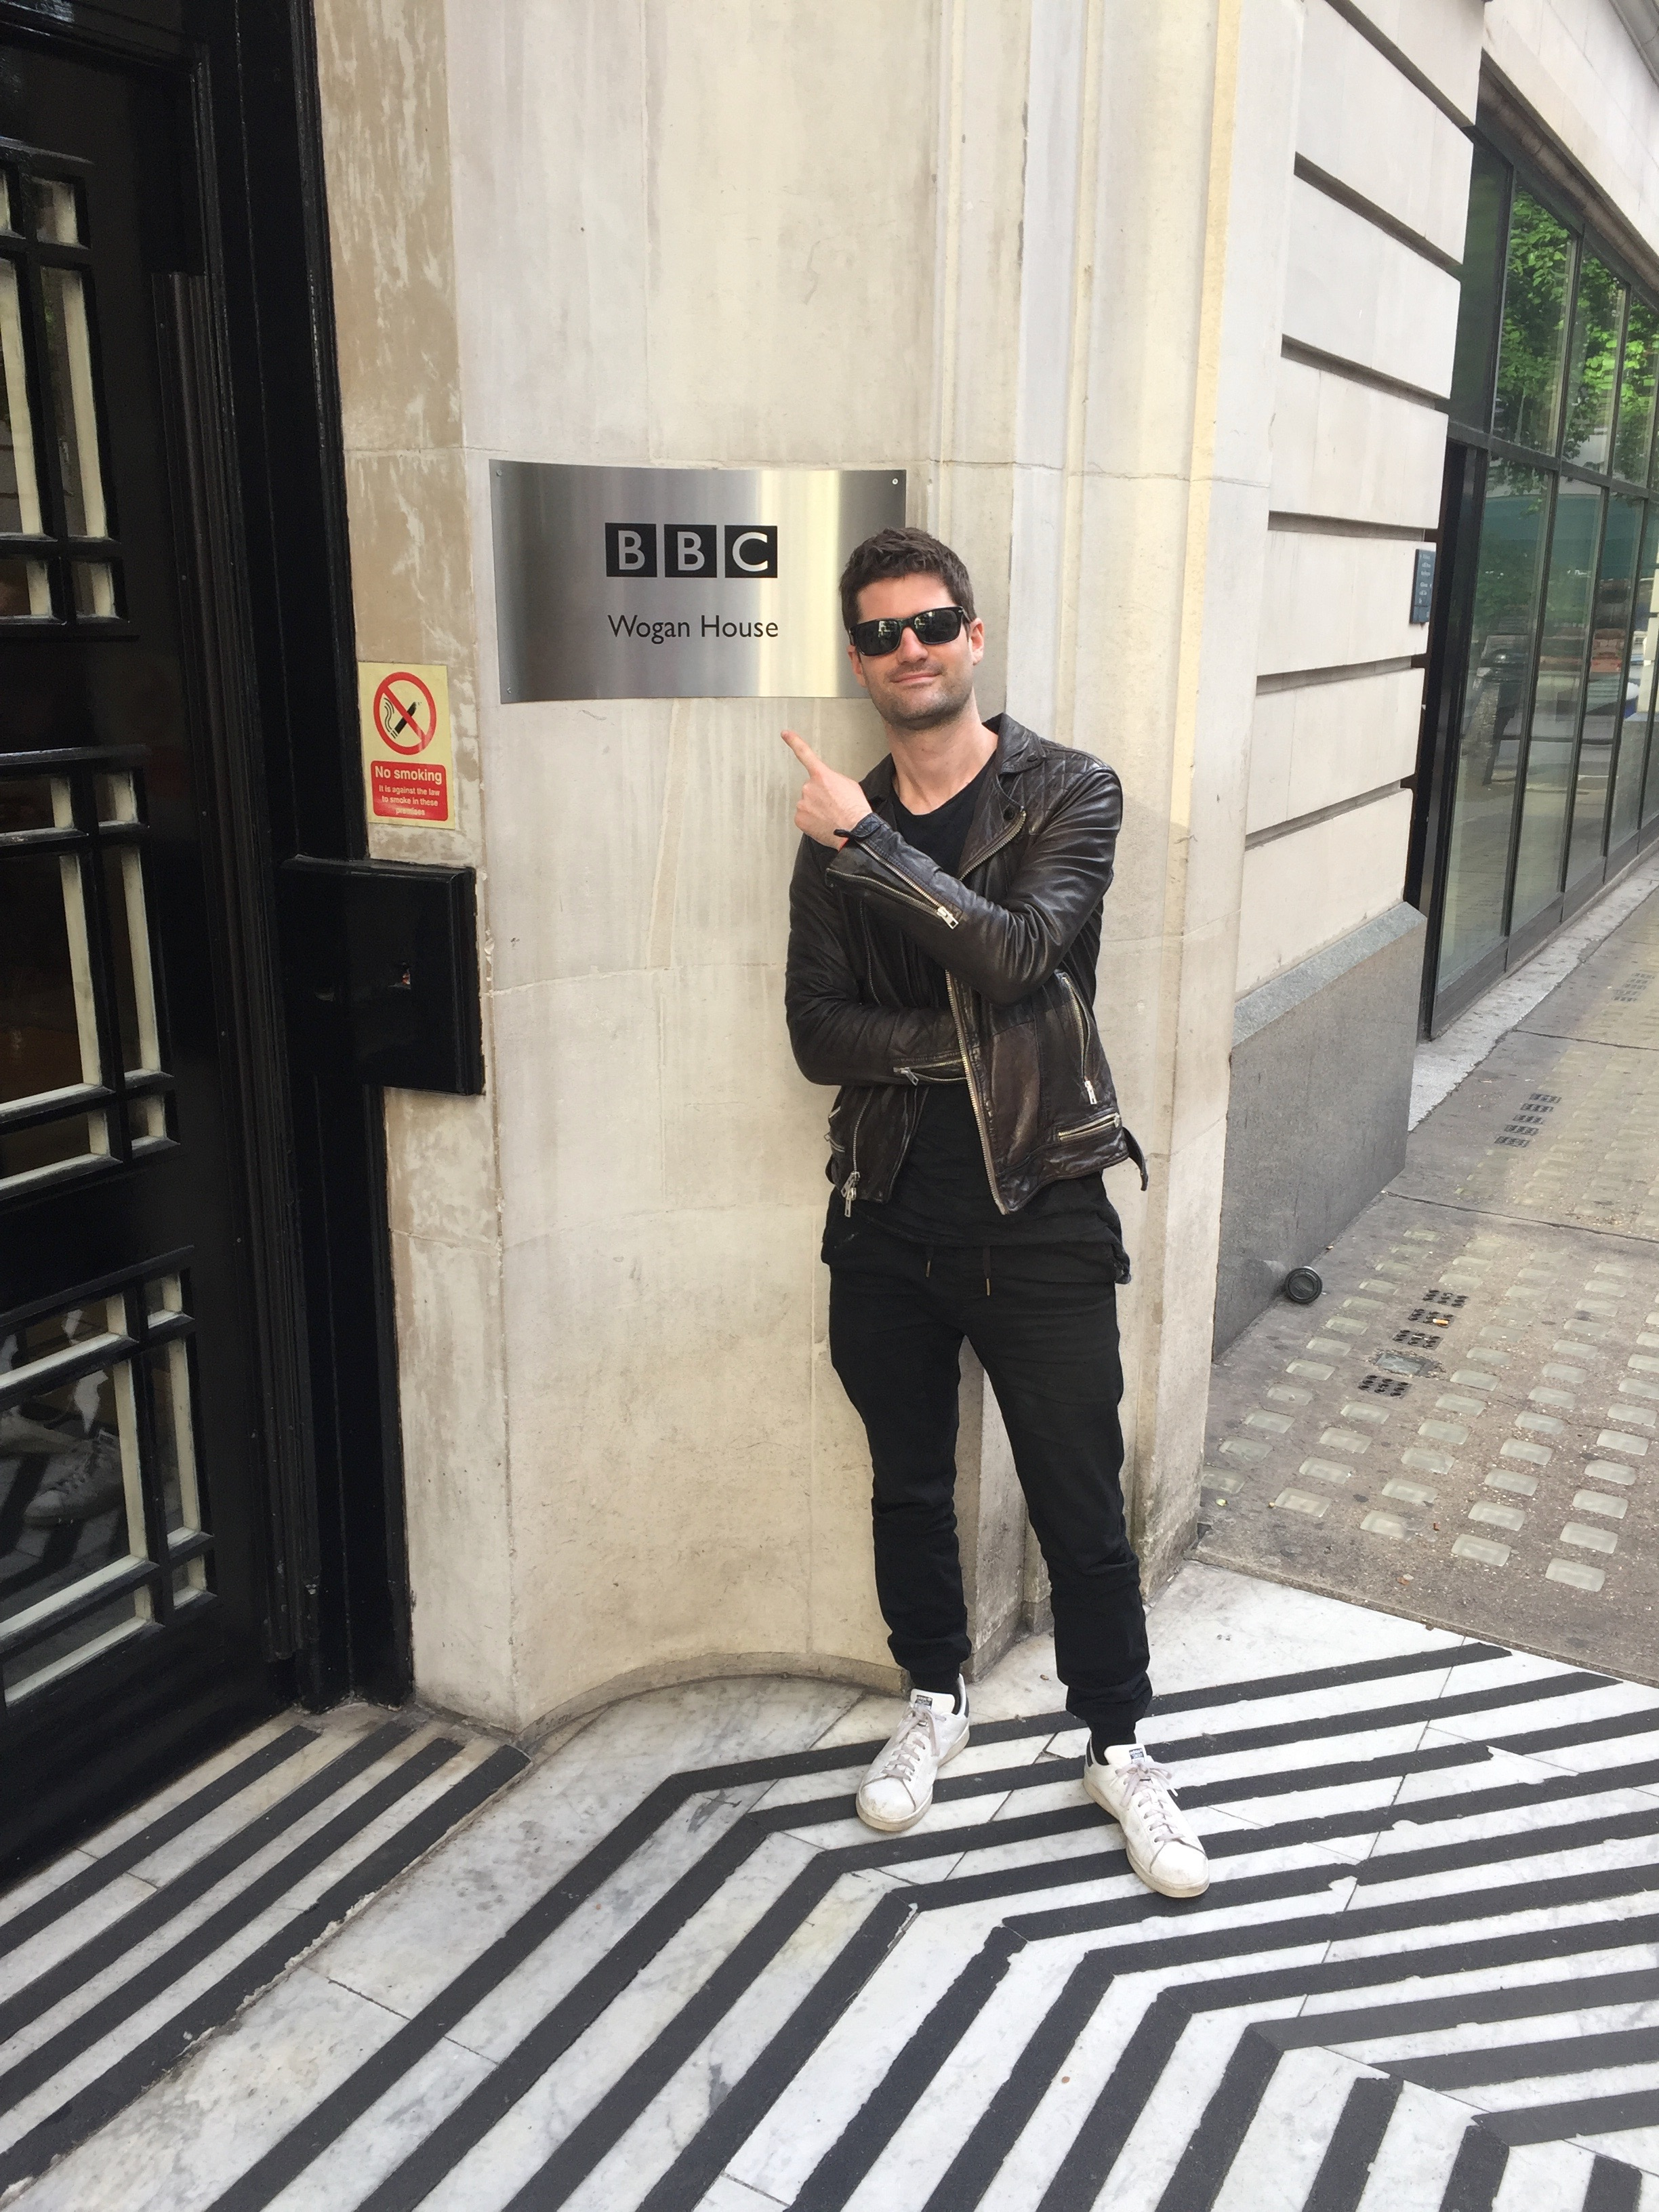 Performing on BBC Radio 2 in London England